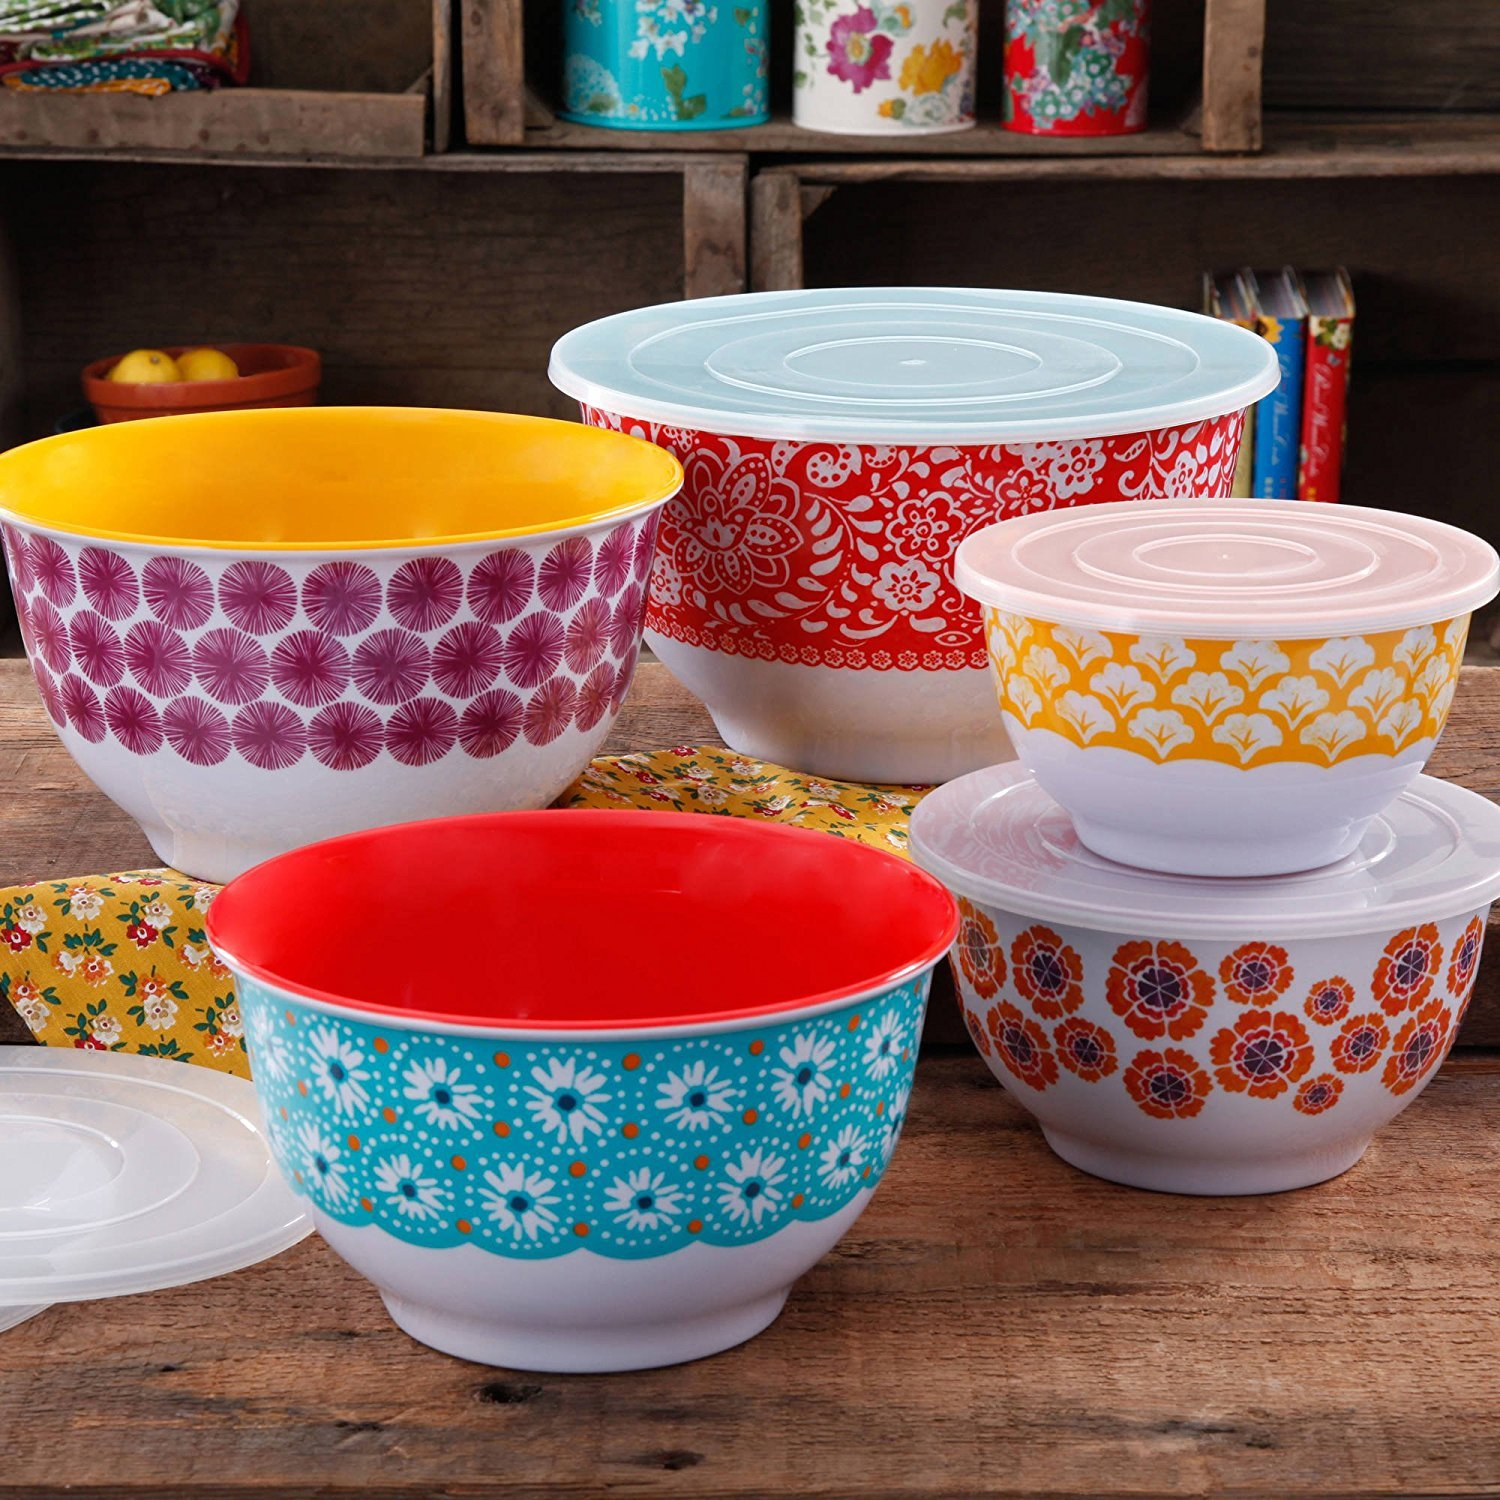 The Pioneer Woman 10-Piece Traveling Nesting Mixing Serving Bowl Set features Vibrant Colors PACK OF 1 by The Pioneer Woman*